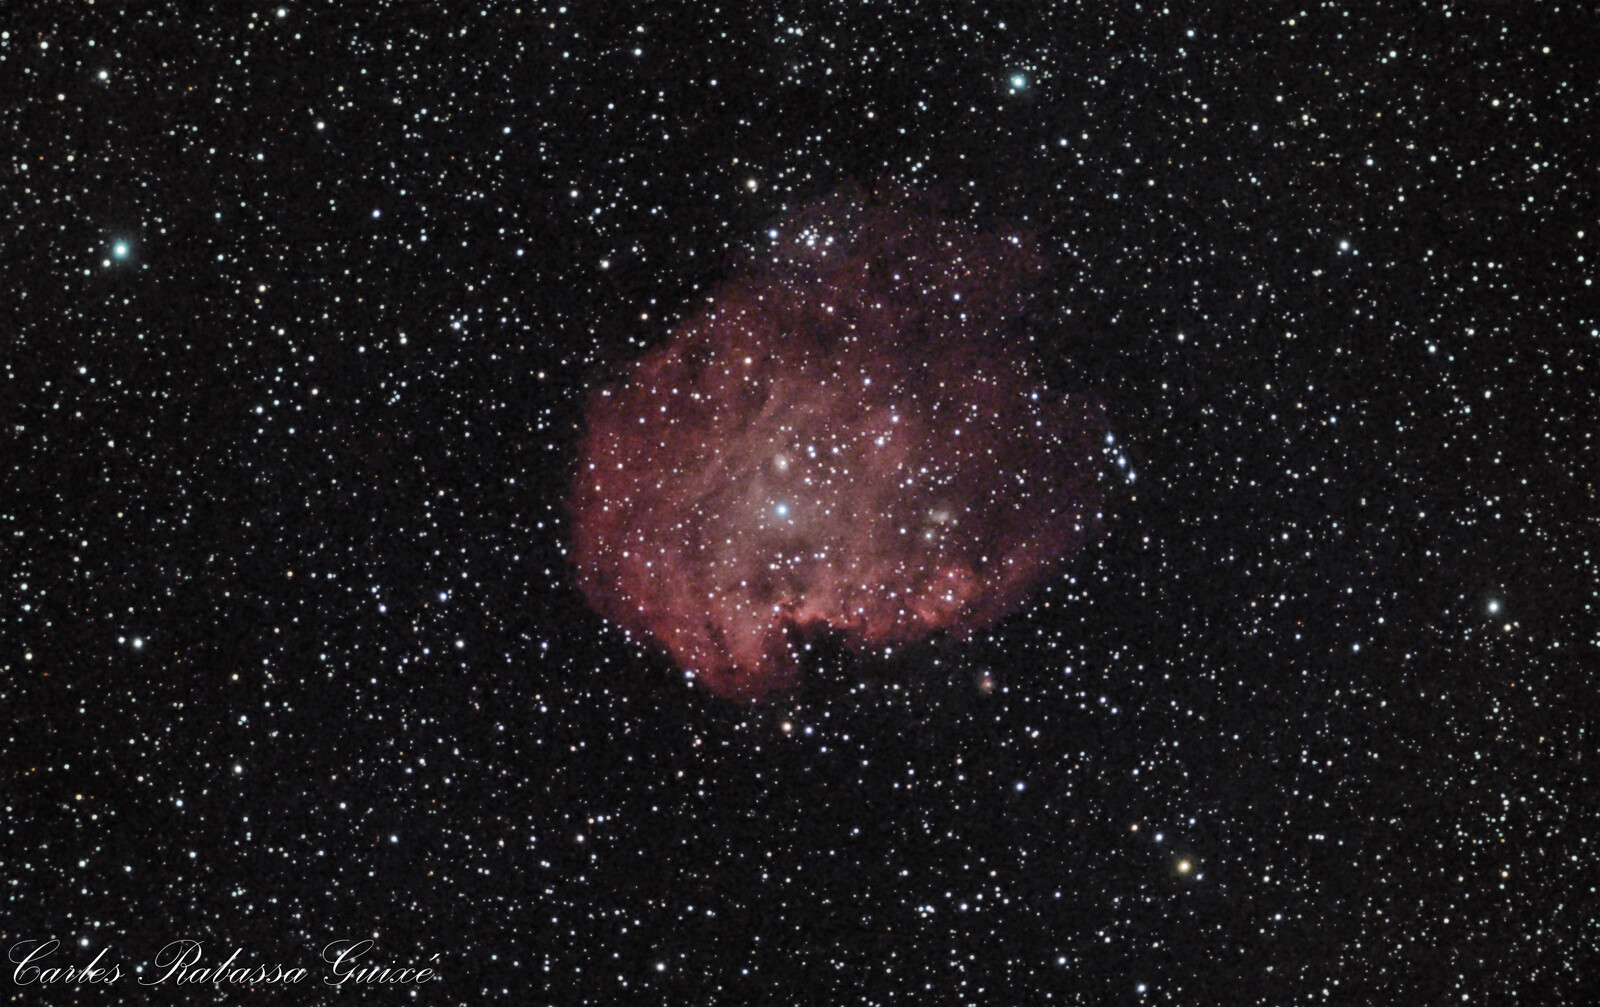 22102020 56min Ap With Borg89ed Qhy8l On Ss2kpc Photo Gallery Cloudy Nights